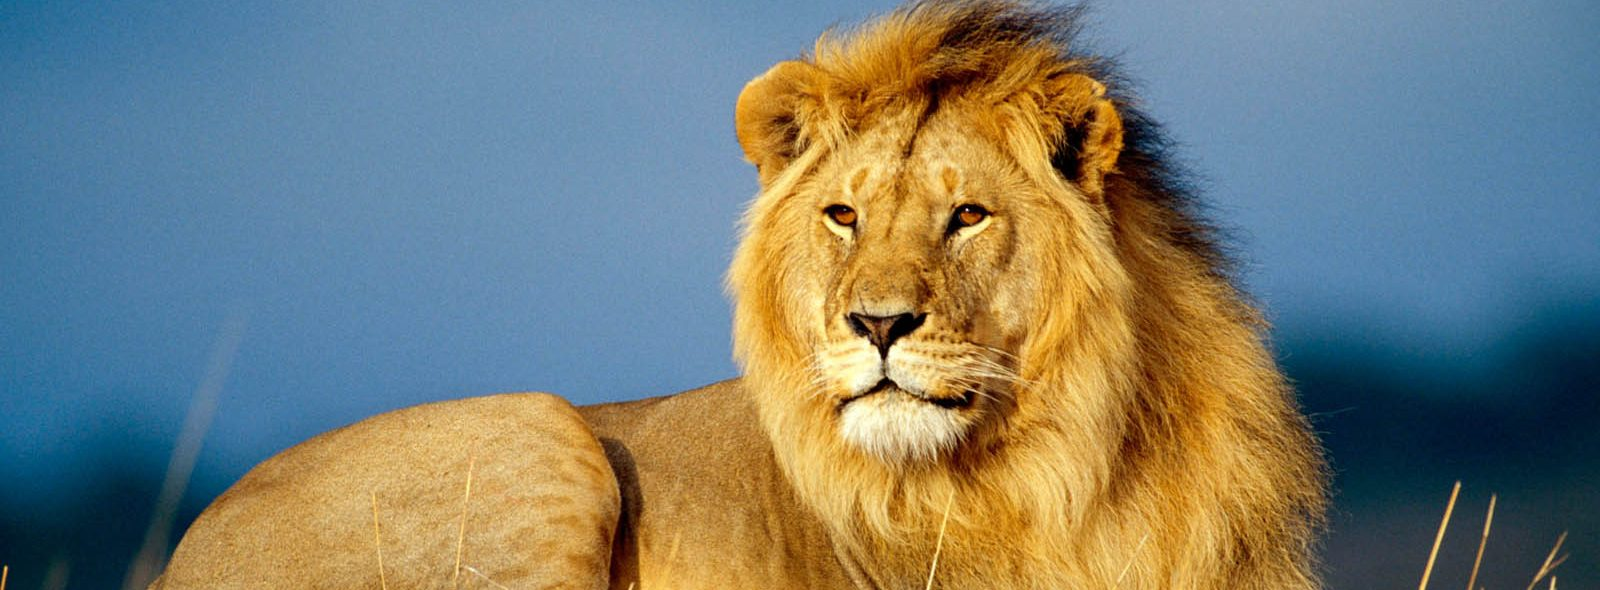 cropped-Male-Lion-Wallpapers-1.jpg